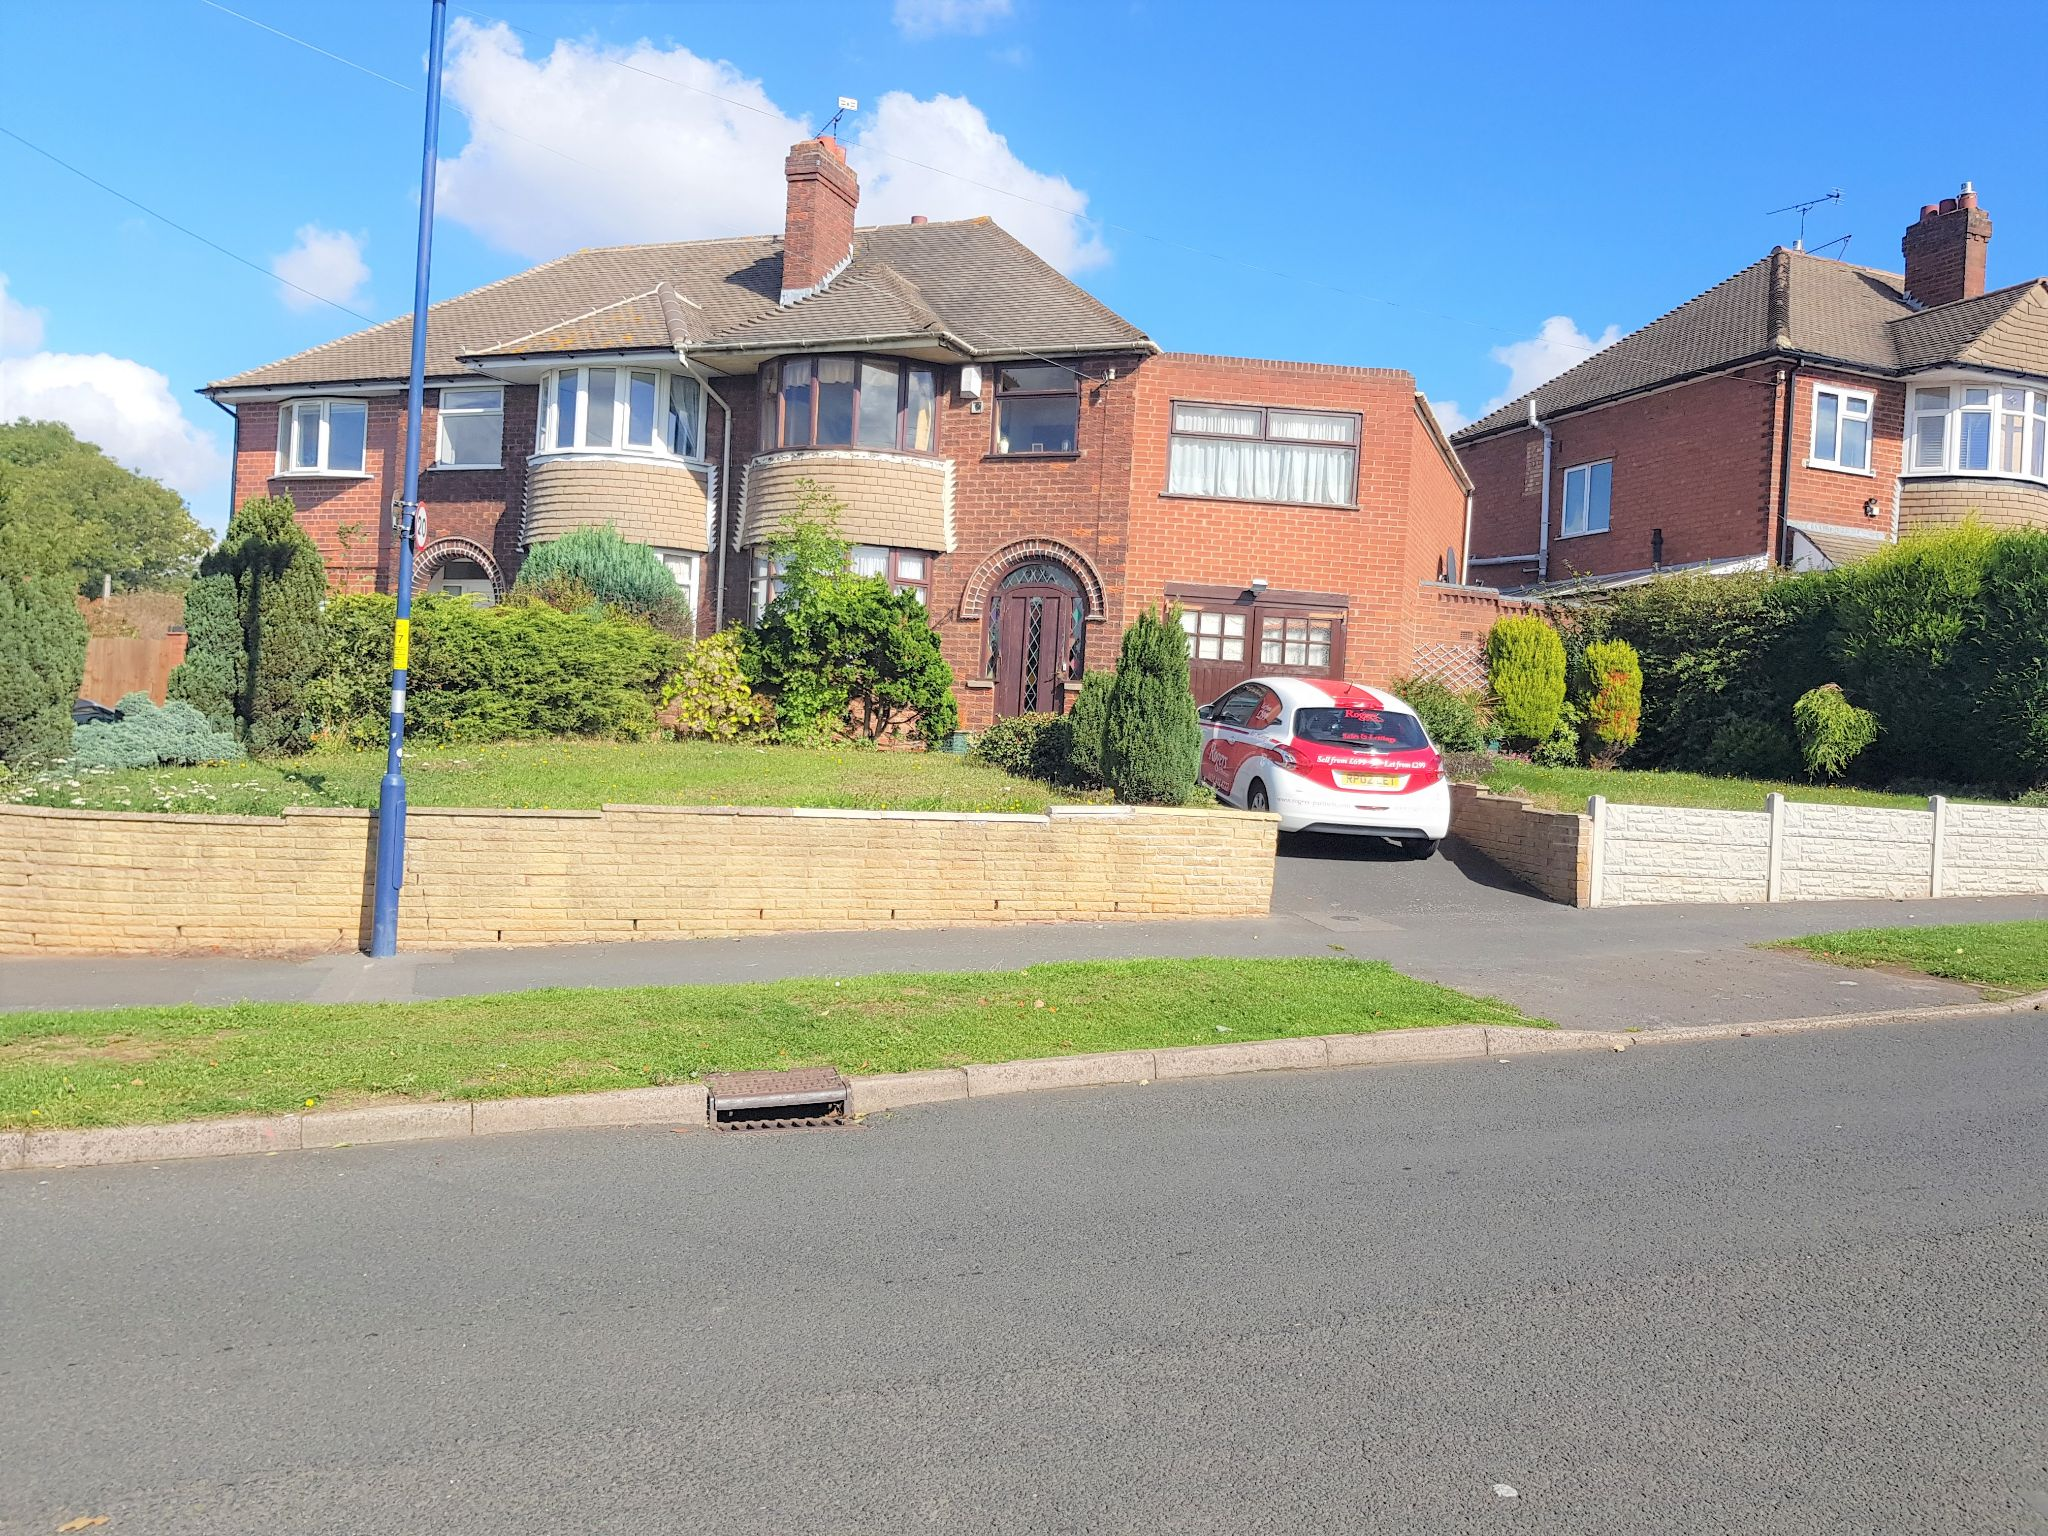 4 Bed Semi-detached House For Sale - FRONT